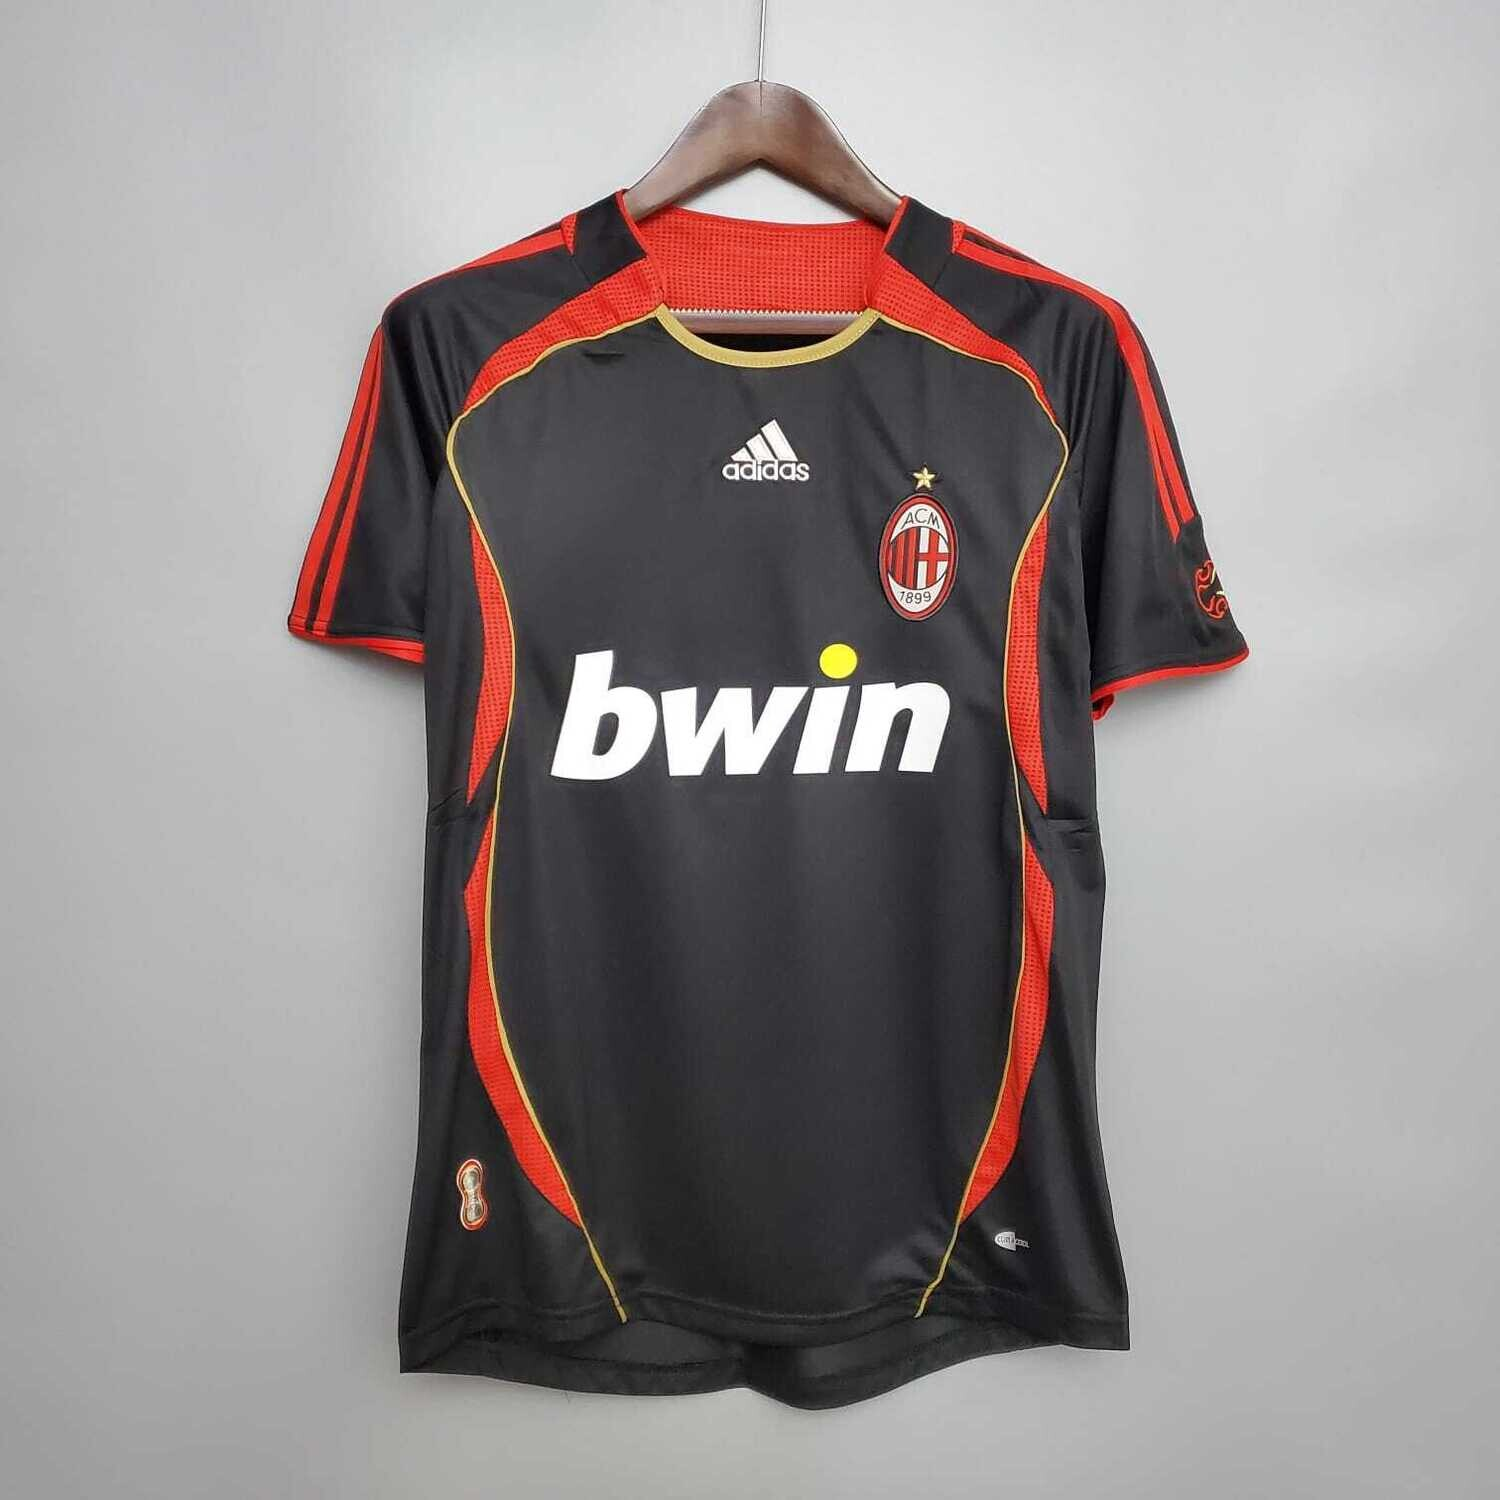 AC Milan 2006-07 Retro Third Jersey [Pre-paid Only]